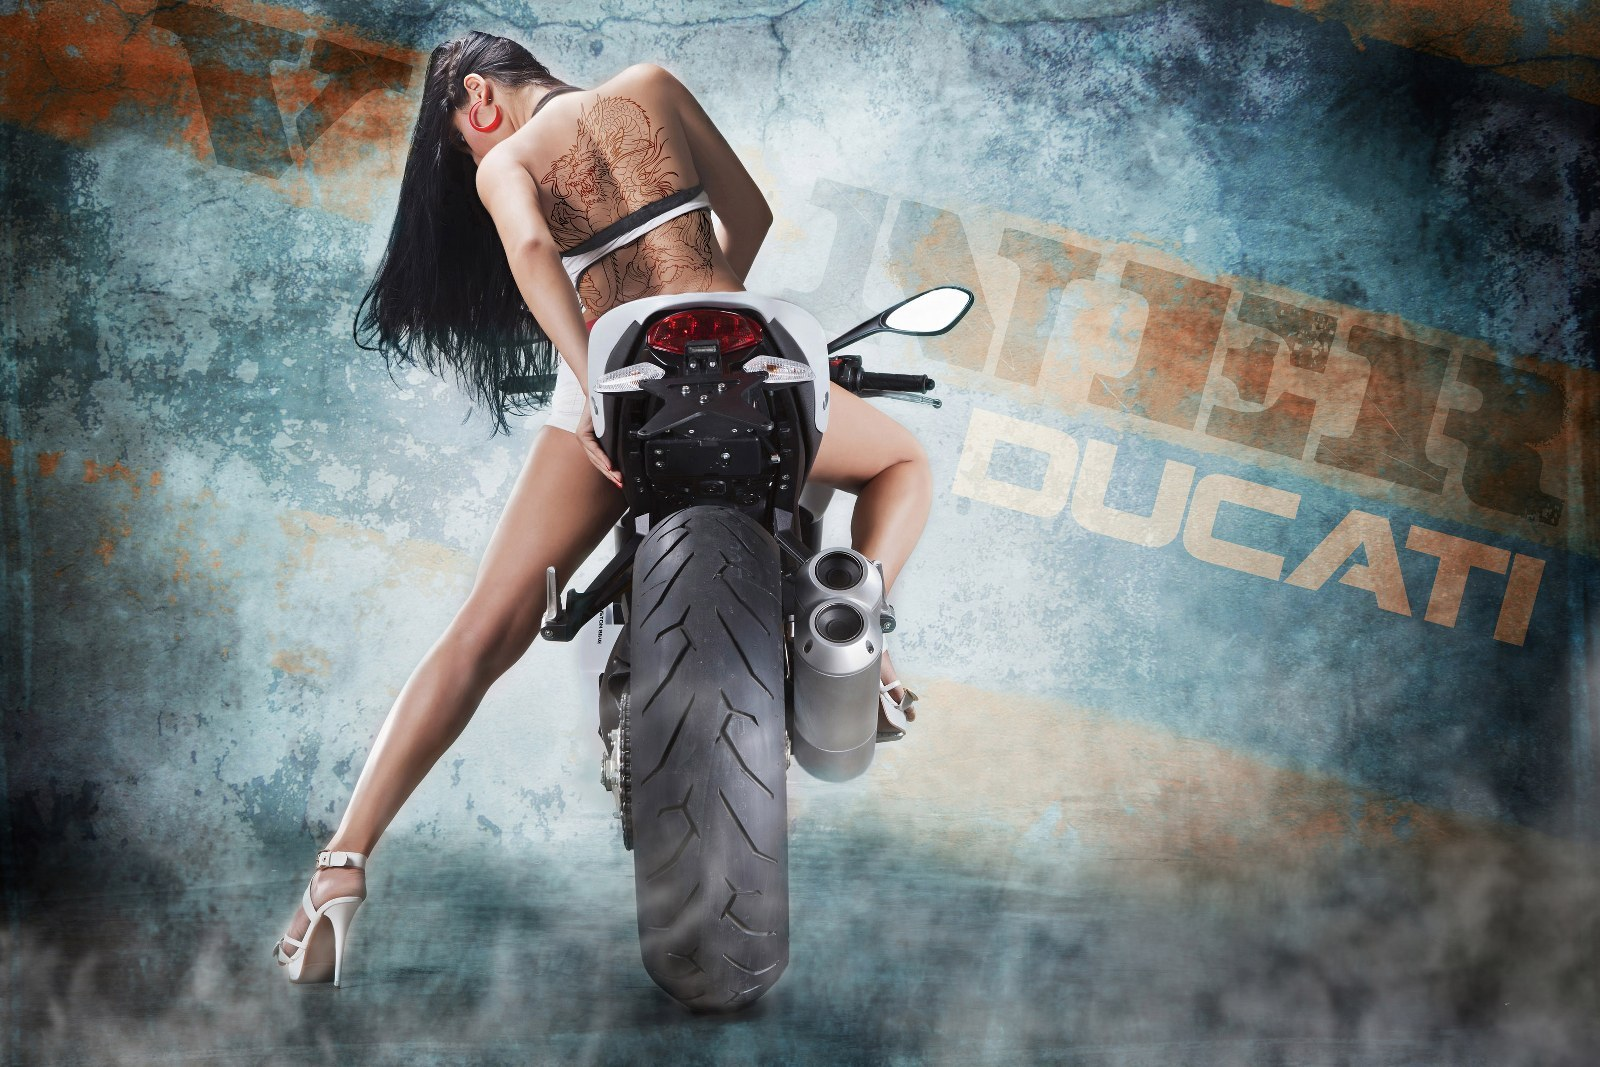 Funny Sexy Ducati Motorcycle Comment Picture 1600x1067 1600x1067